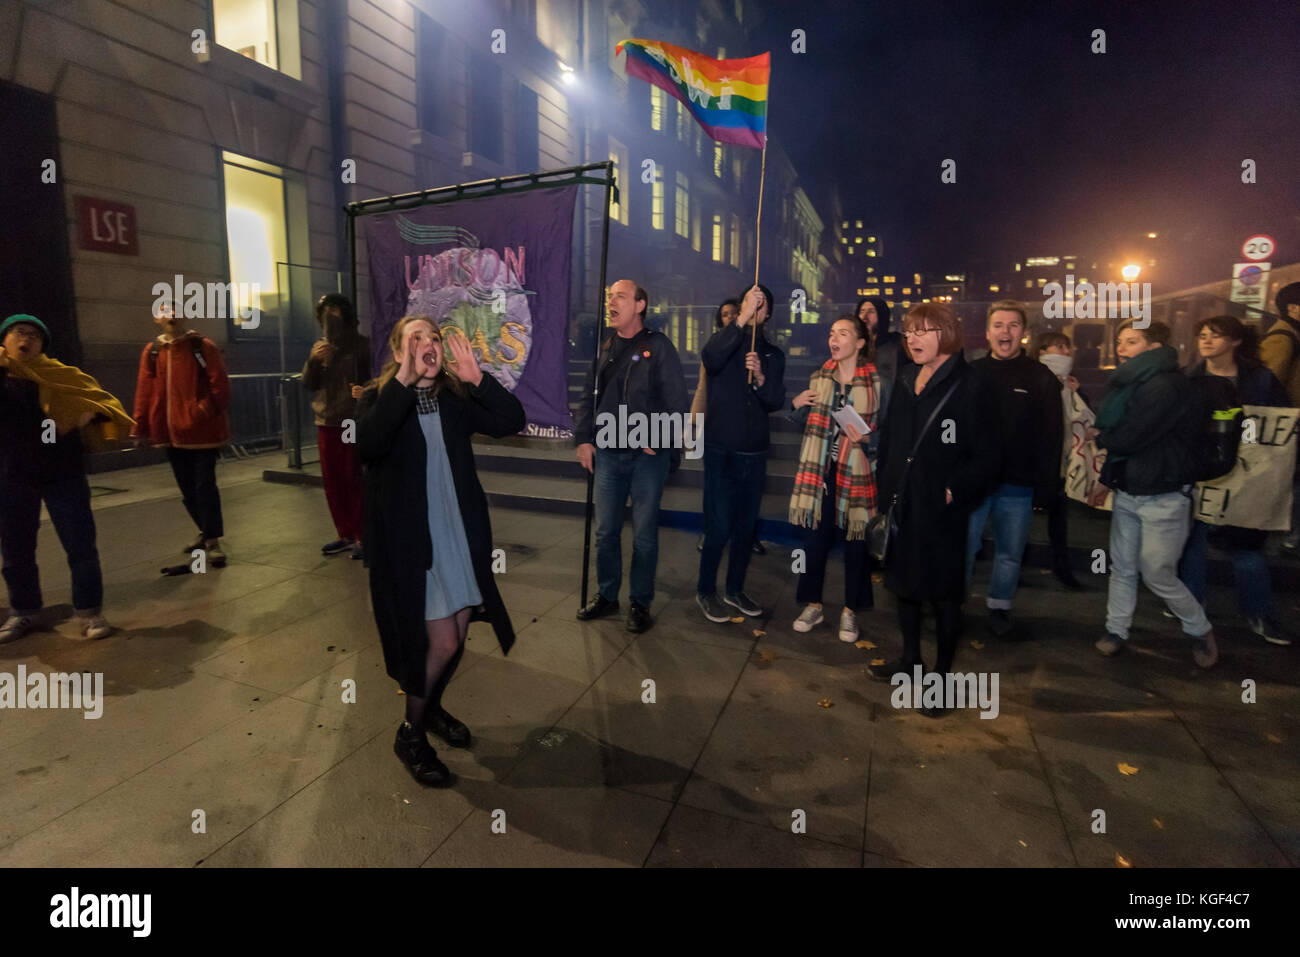 November 6, 2017 - London, UK. 6th November 2017. LSE students and supporters protest against the homophobic abuse - Stock Image